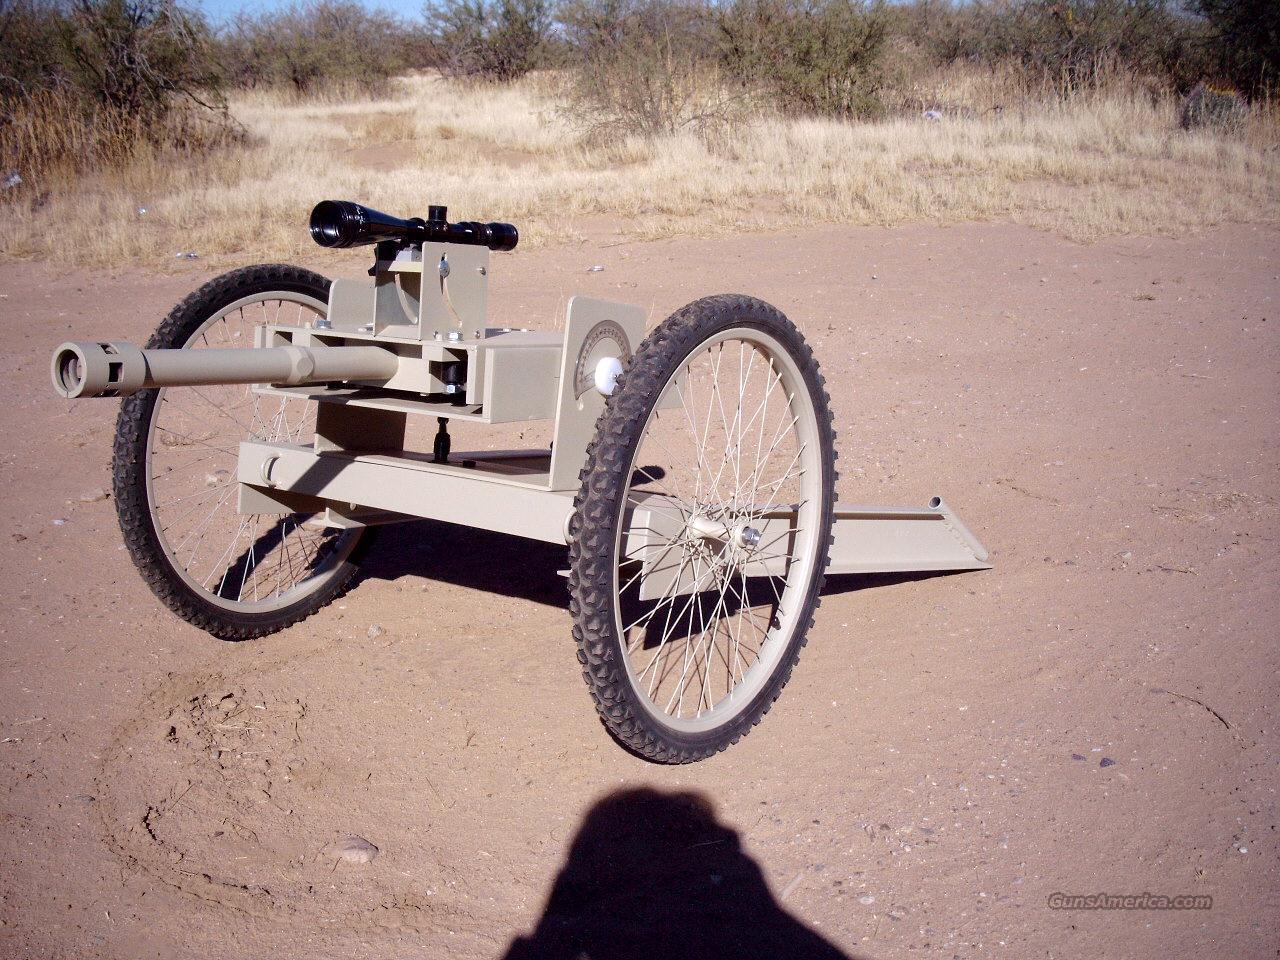 30 MM rifled, Black Powder Cannon.  Guns > Rifles > Cannons > Cannons & Field Artilery